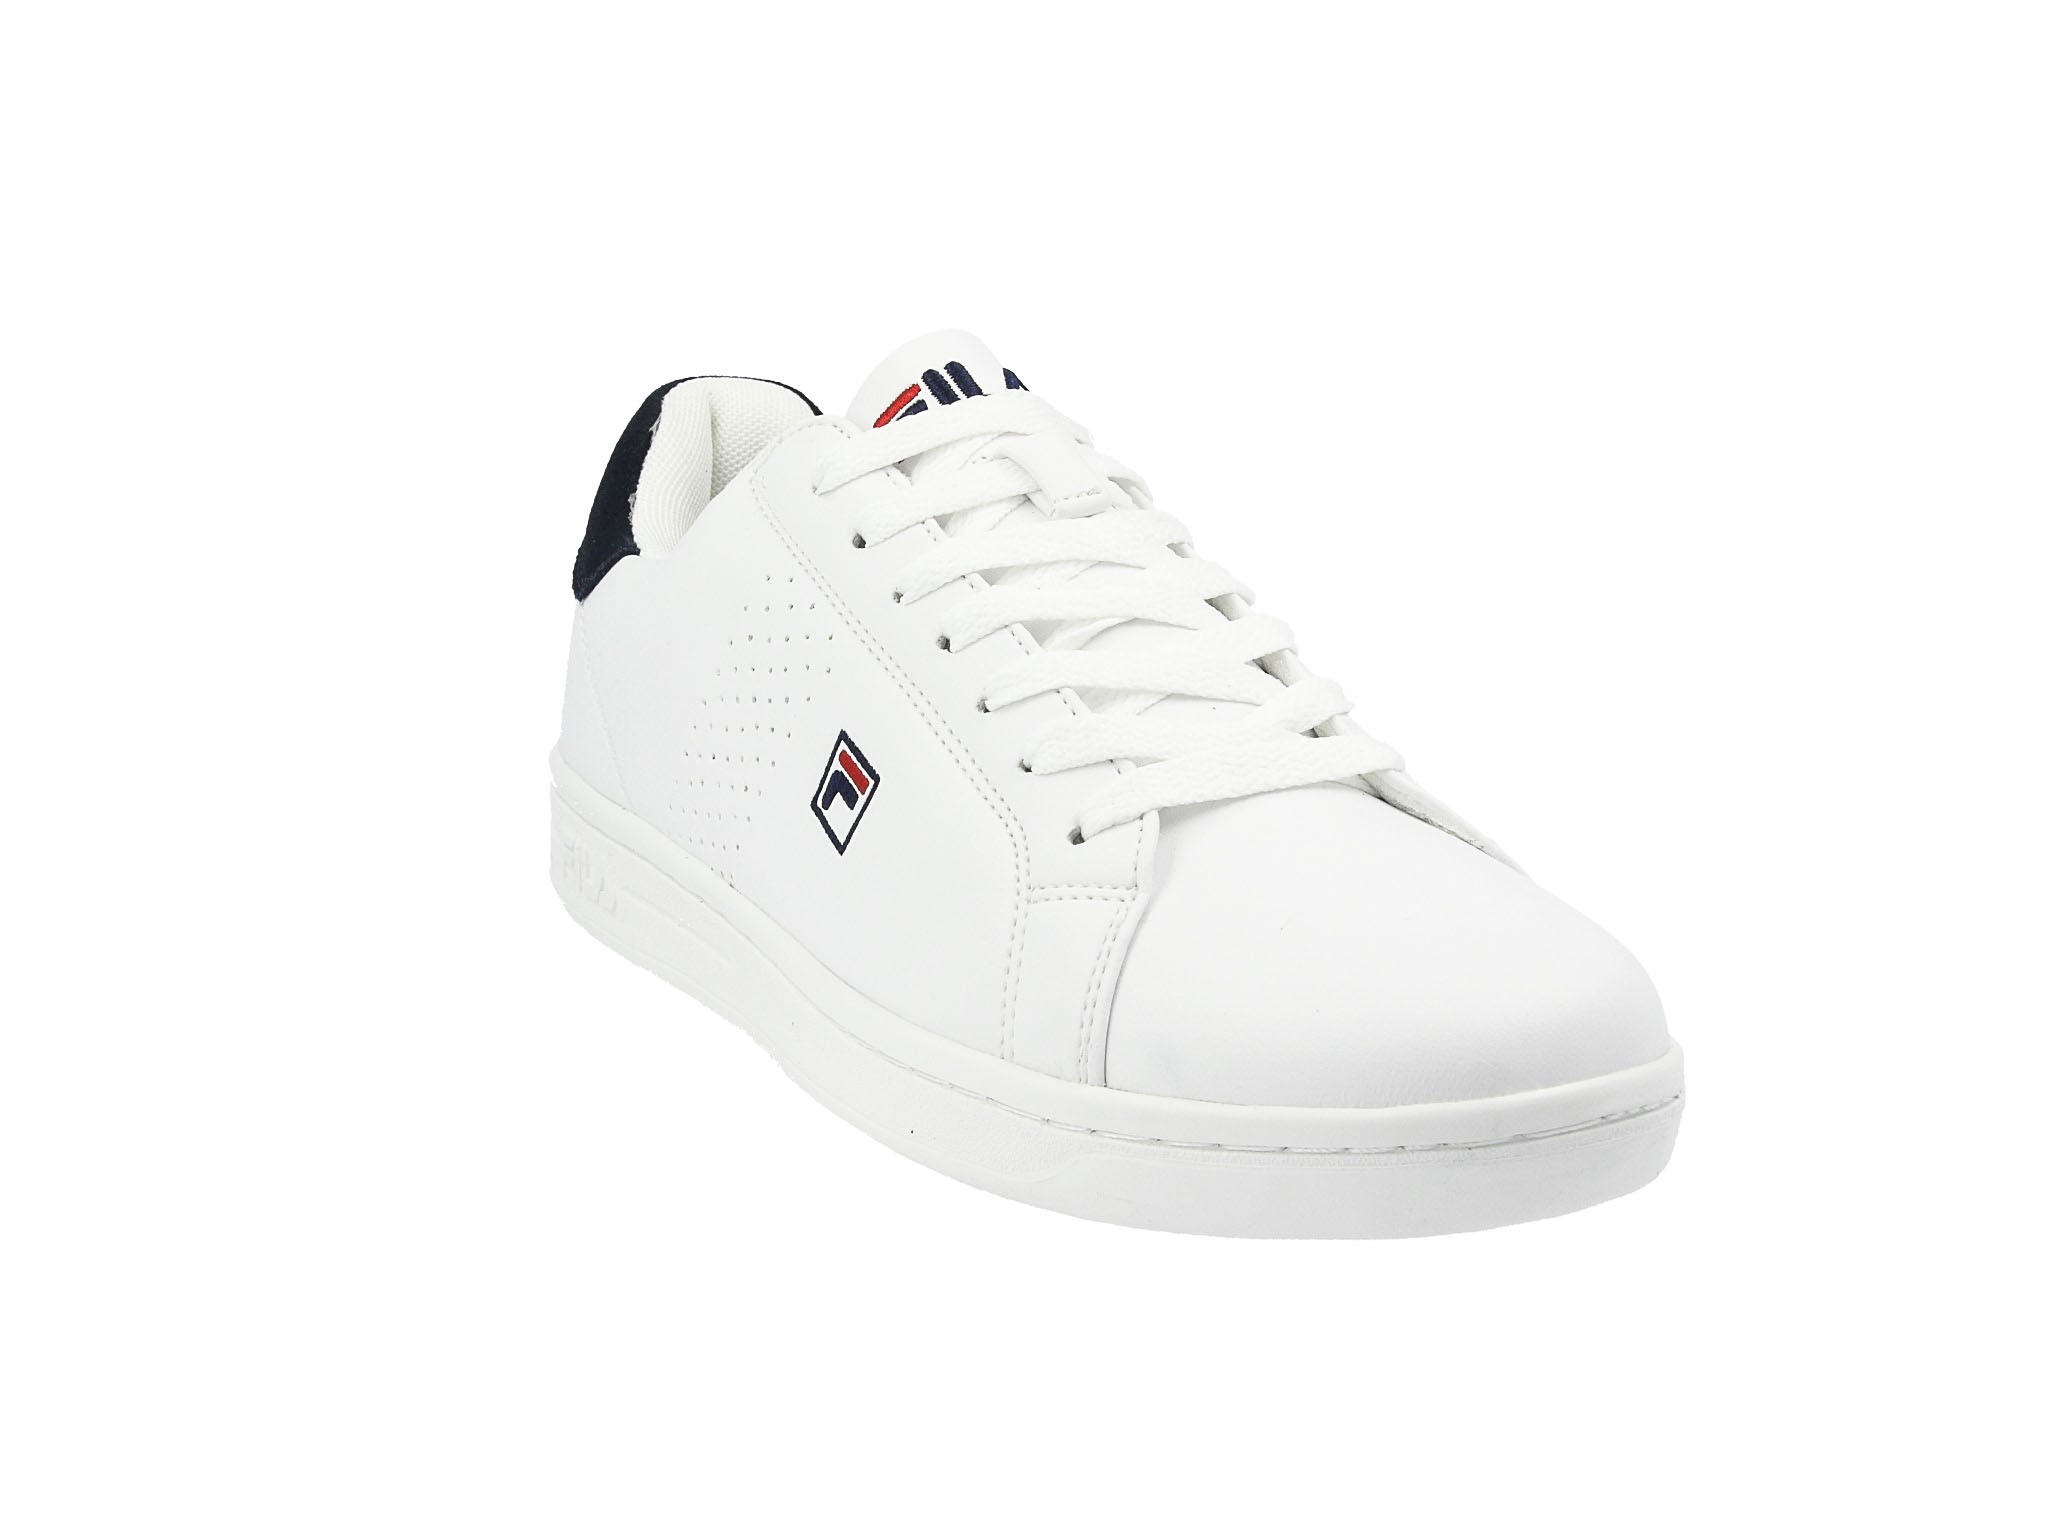 sneakers fila crosscourt 2 f low 1010276.98f whitedress